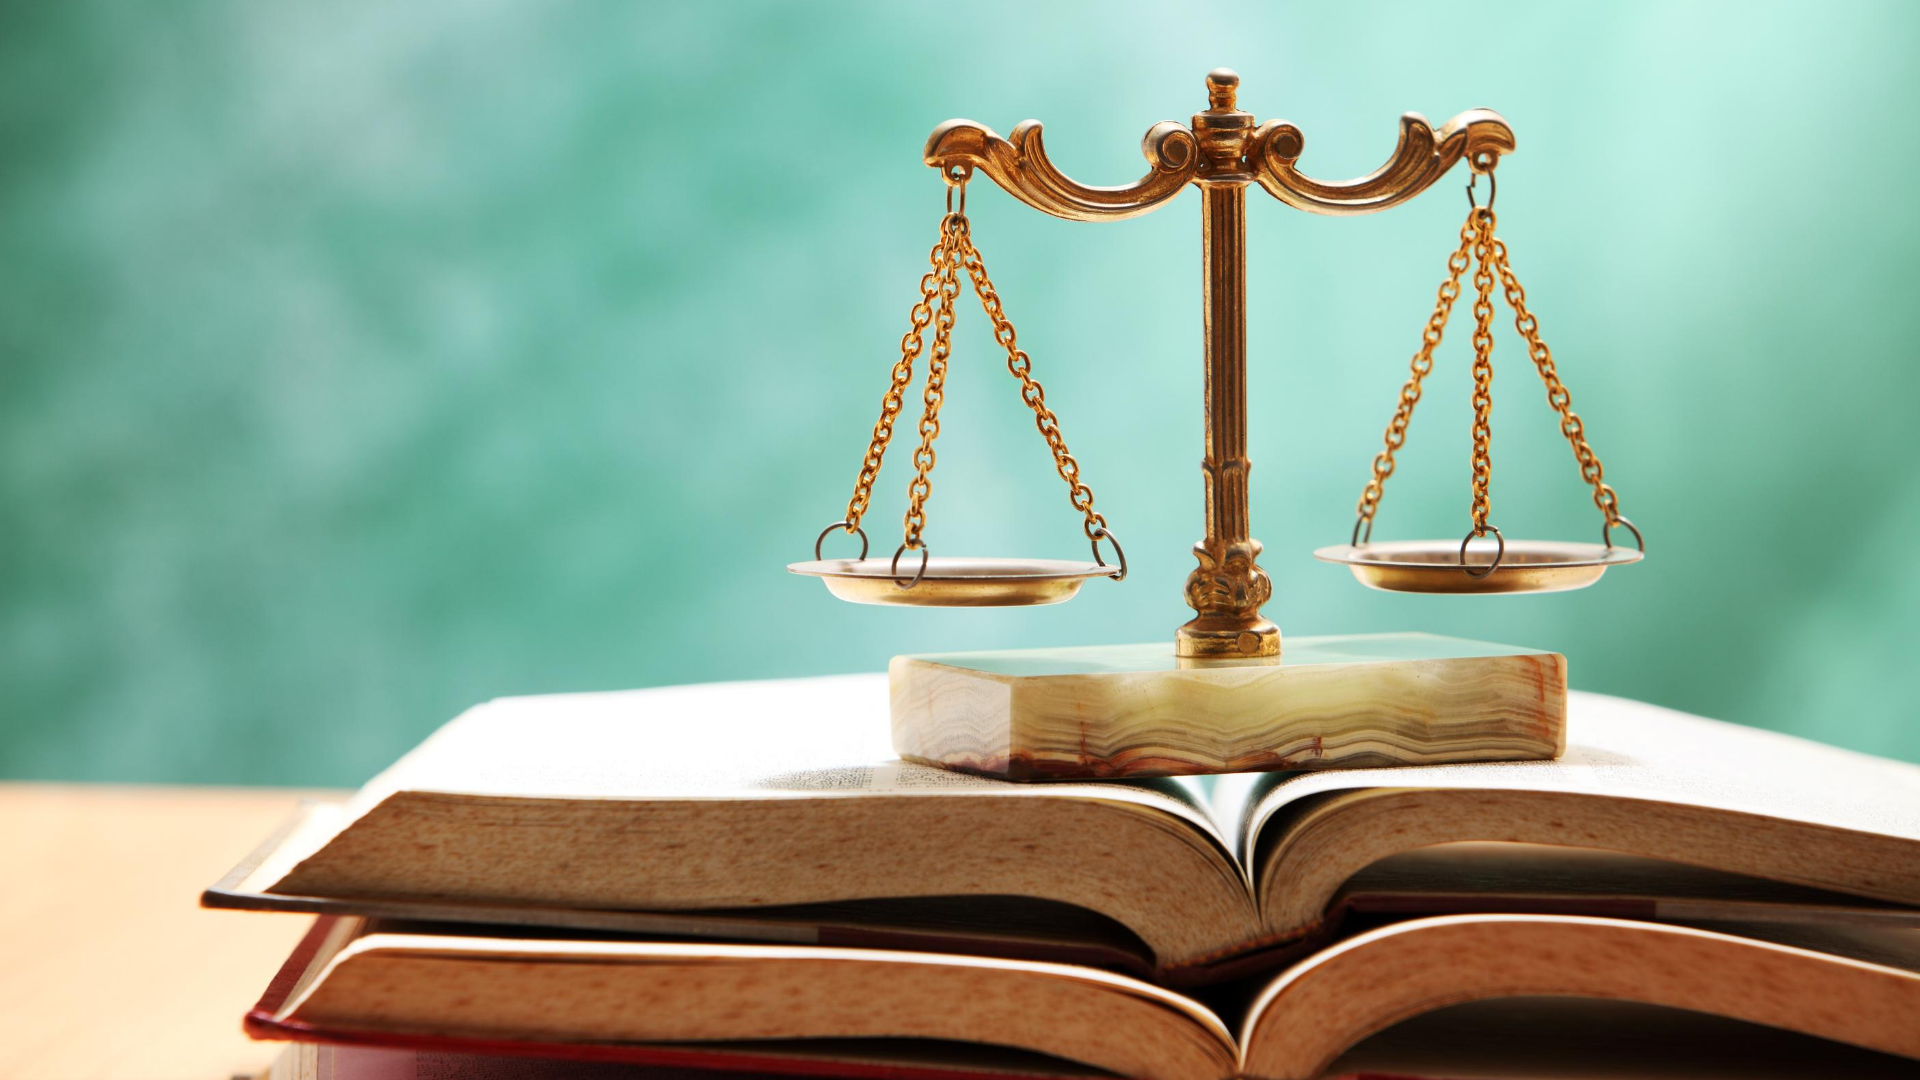 The Best Way to select a certified Online Law Degree Program